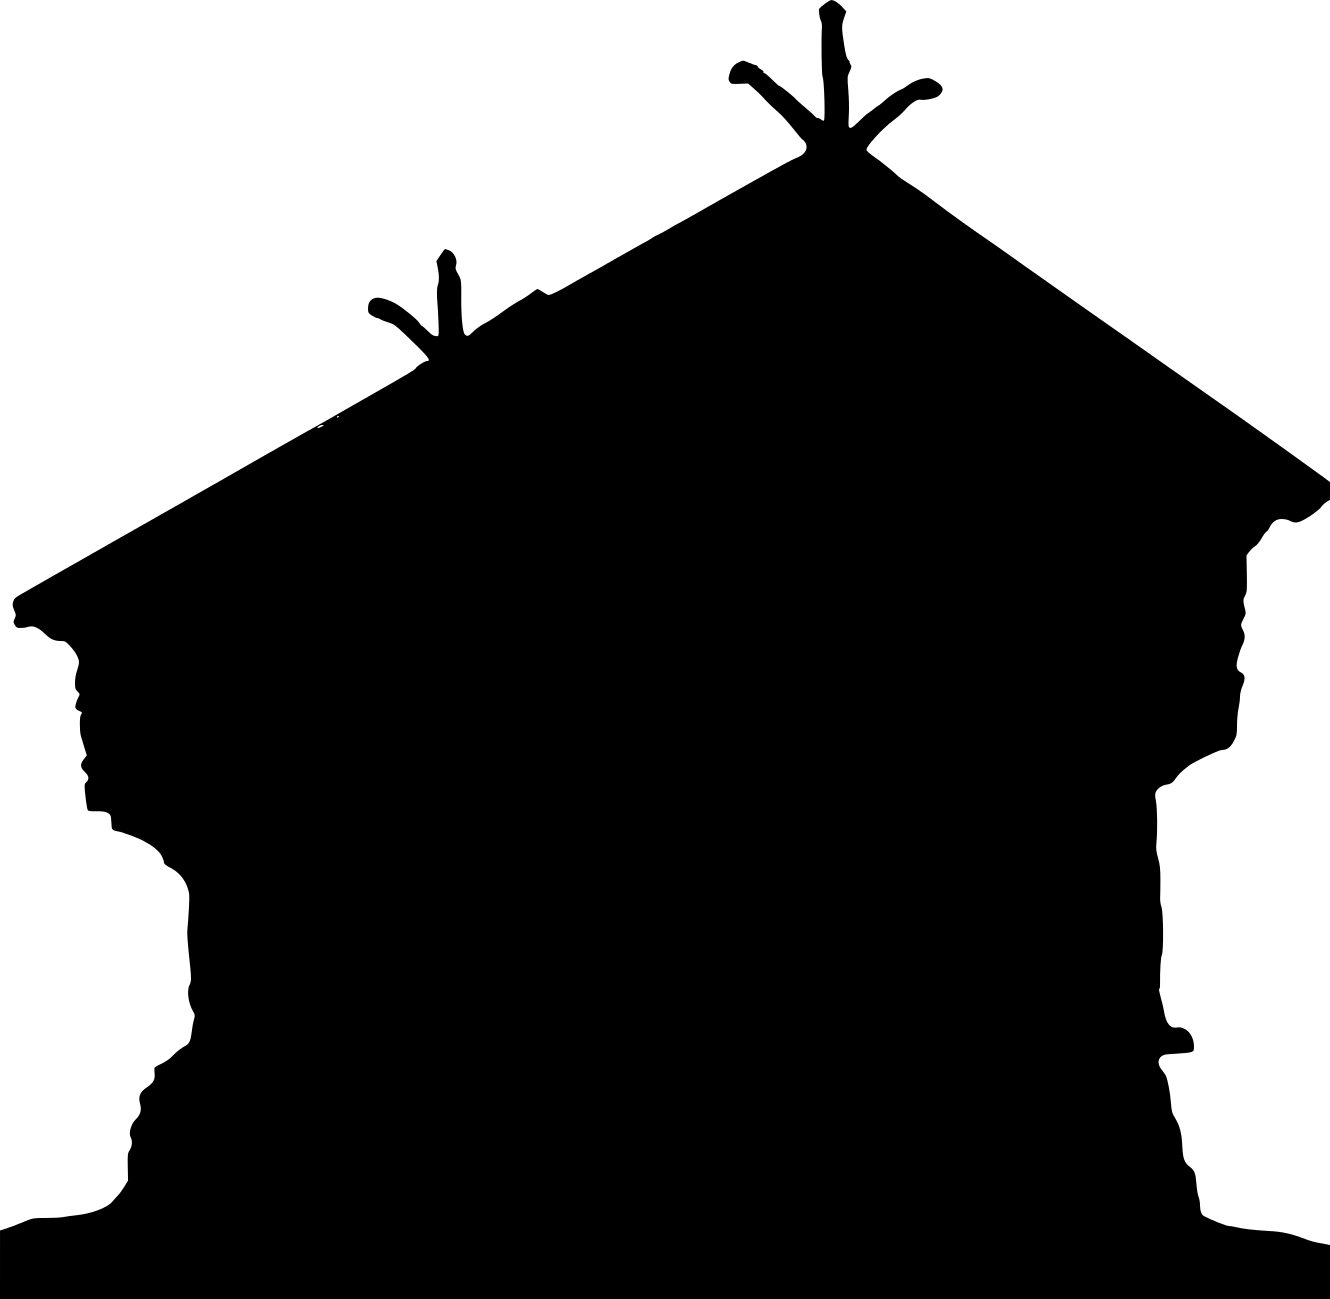 Roof clipart silhouette. At getdrawings com free